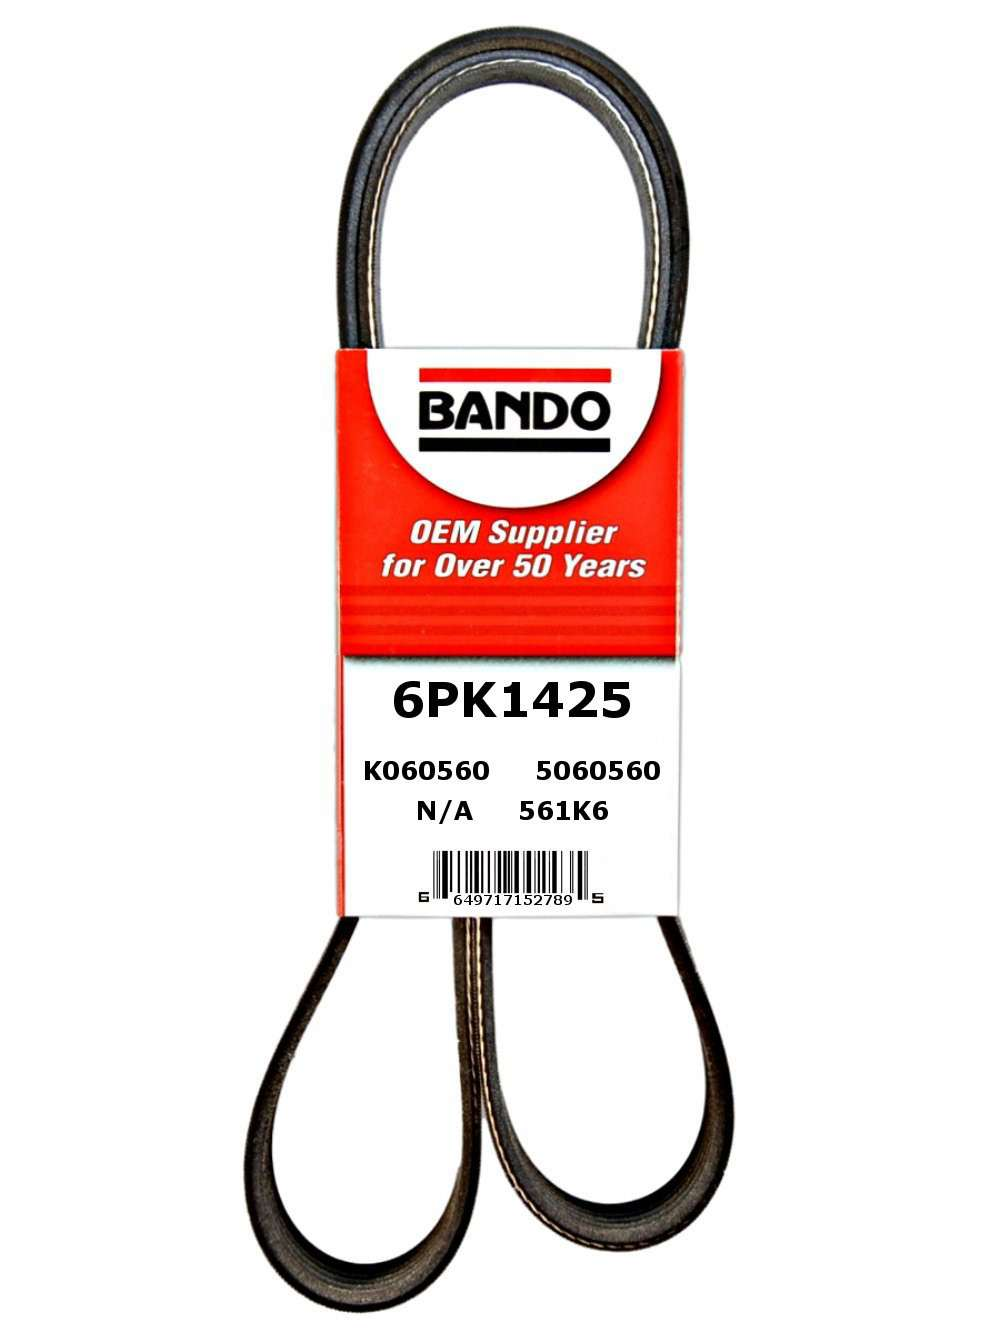 BANDO - Rib Ace Precision Engineered V-Ribbed Belt (Alternator and Compressor) - BWO 6PK1425